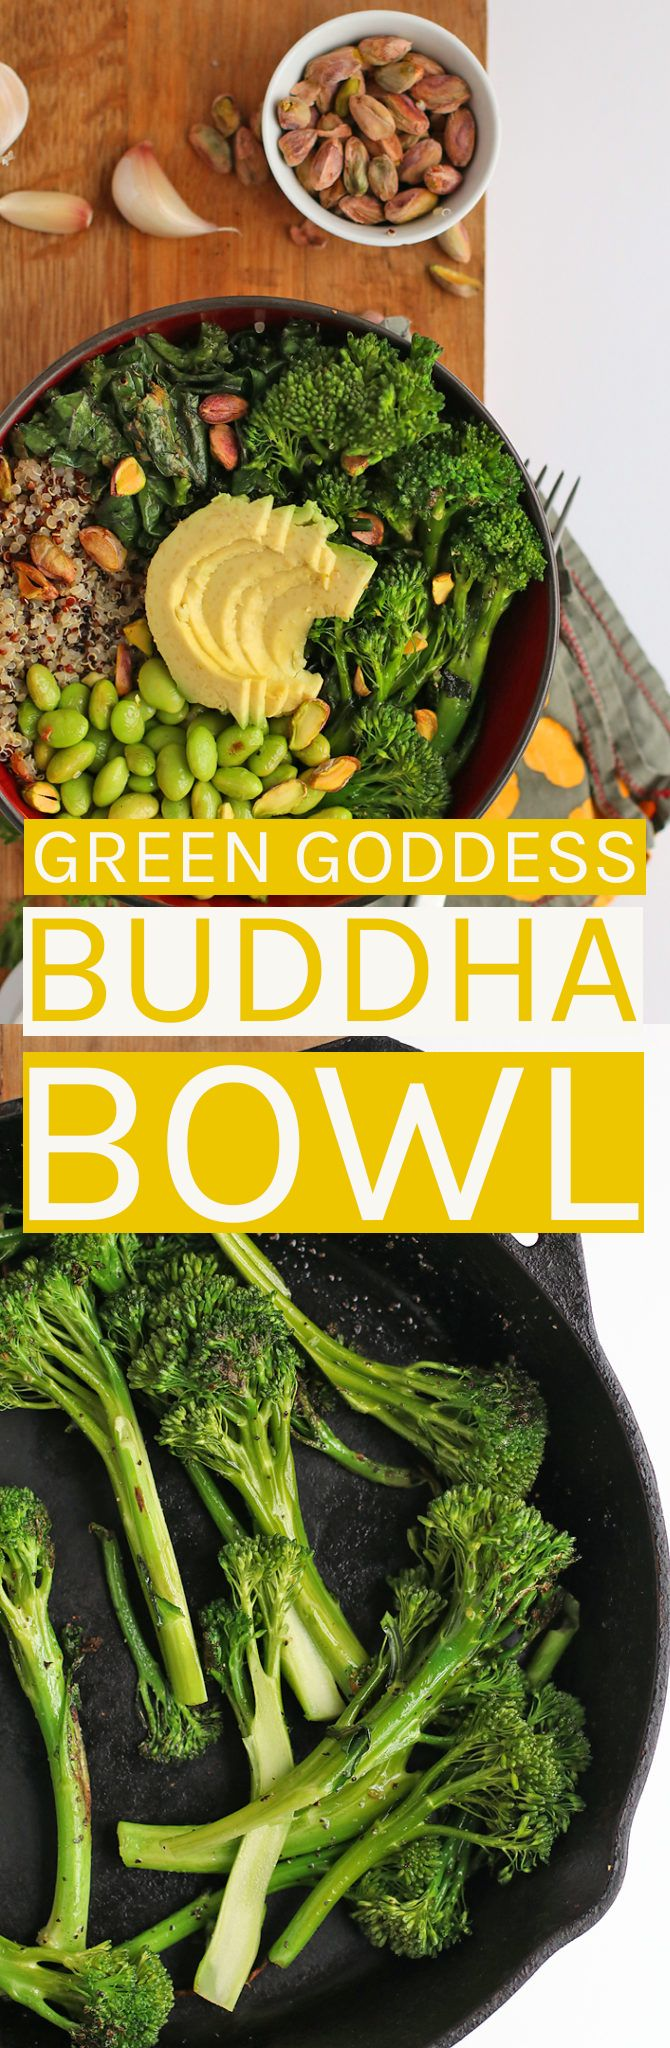 Enjoy this Green Goddess Buddha Bowl for a healthy vegan and gluten-free meal.